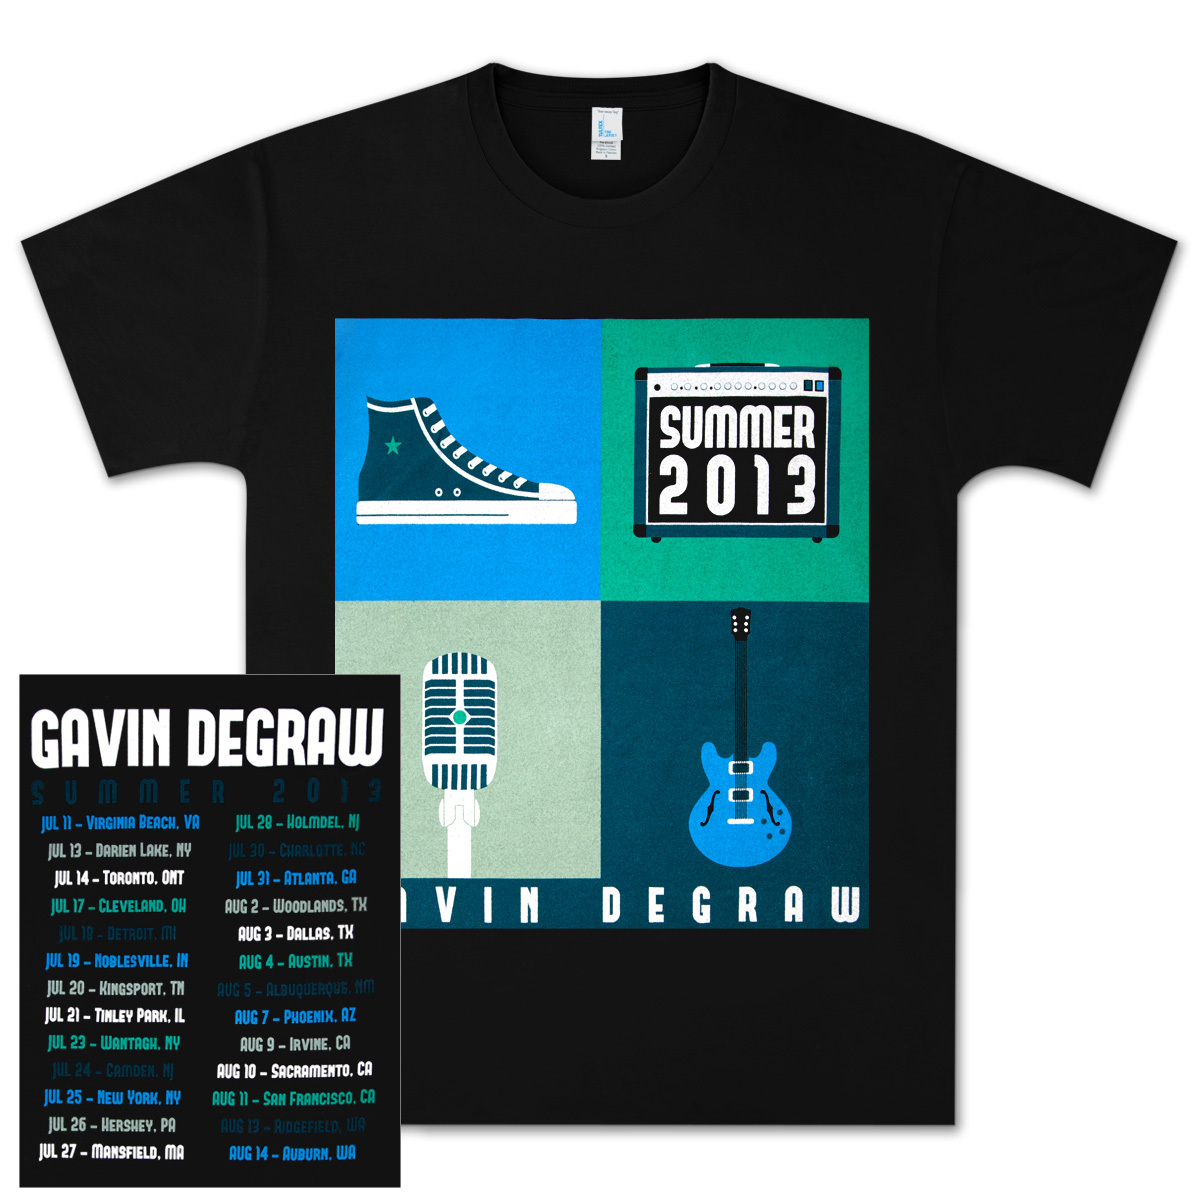 Gavin DeGraw - Summer 2013 Tour T-Shirt